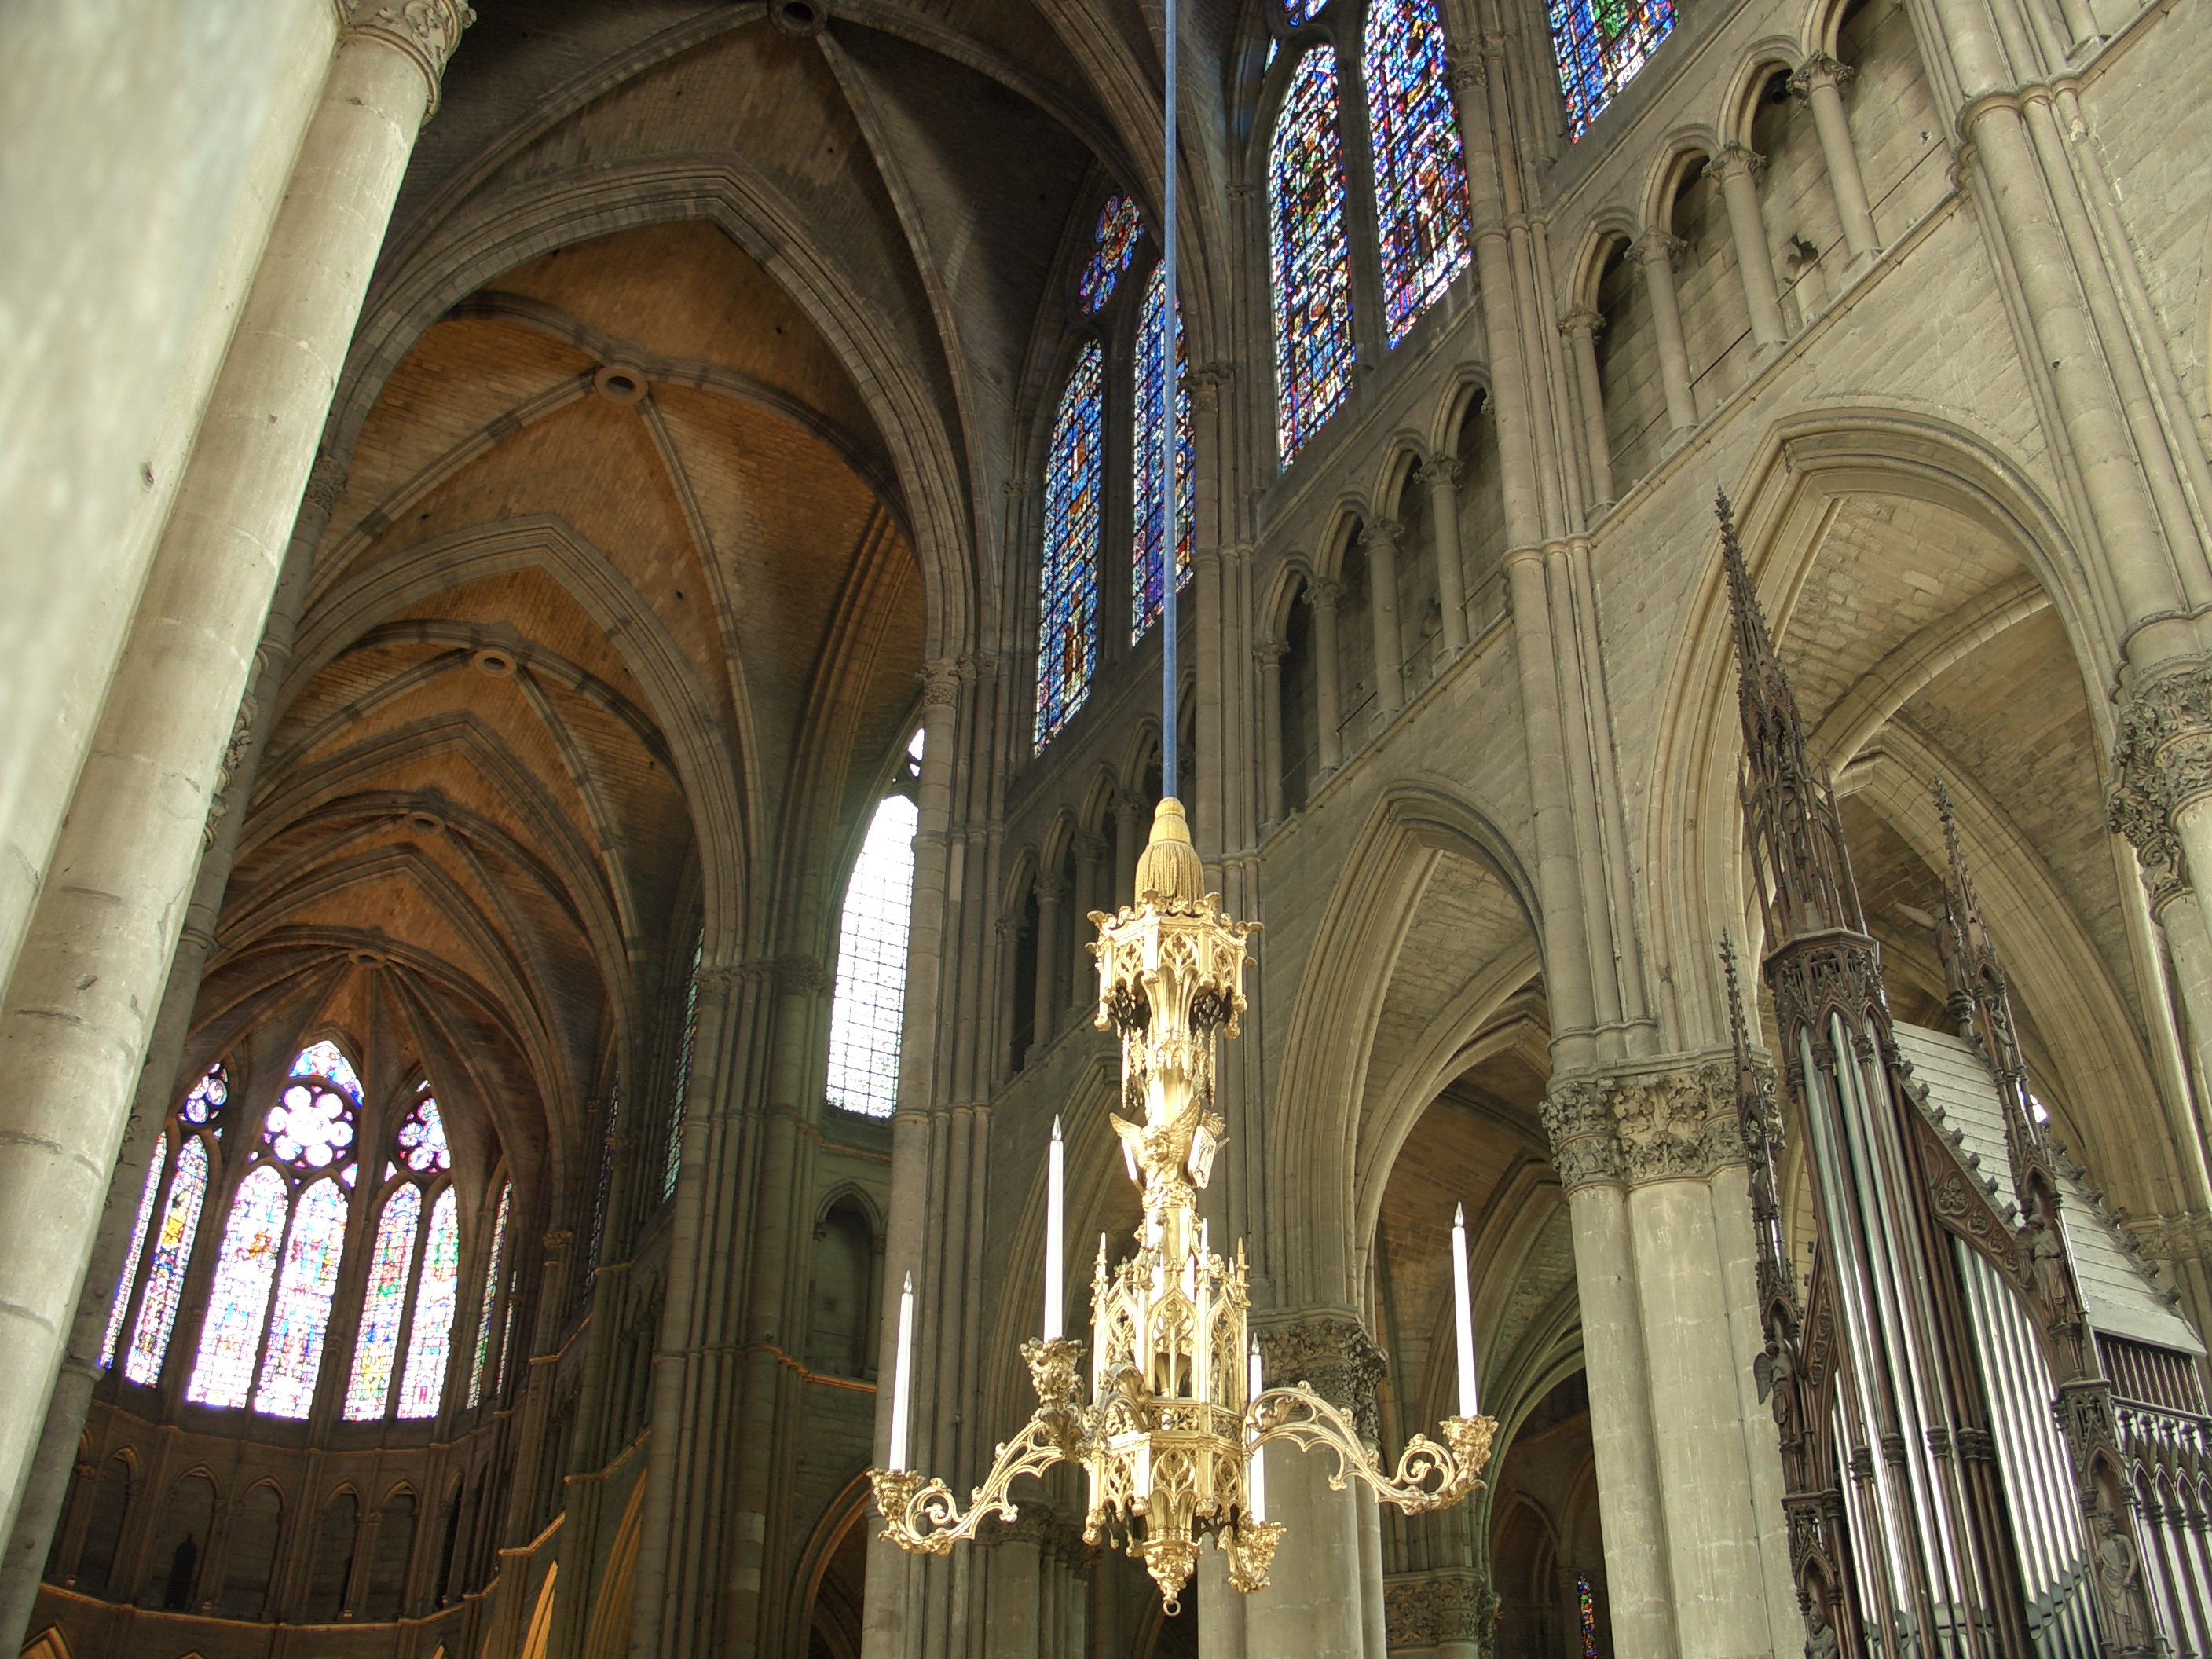 Beautiful File:Catedral De Reims Interior.JPG